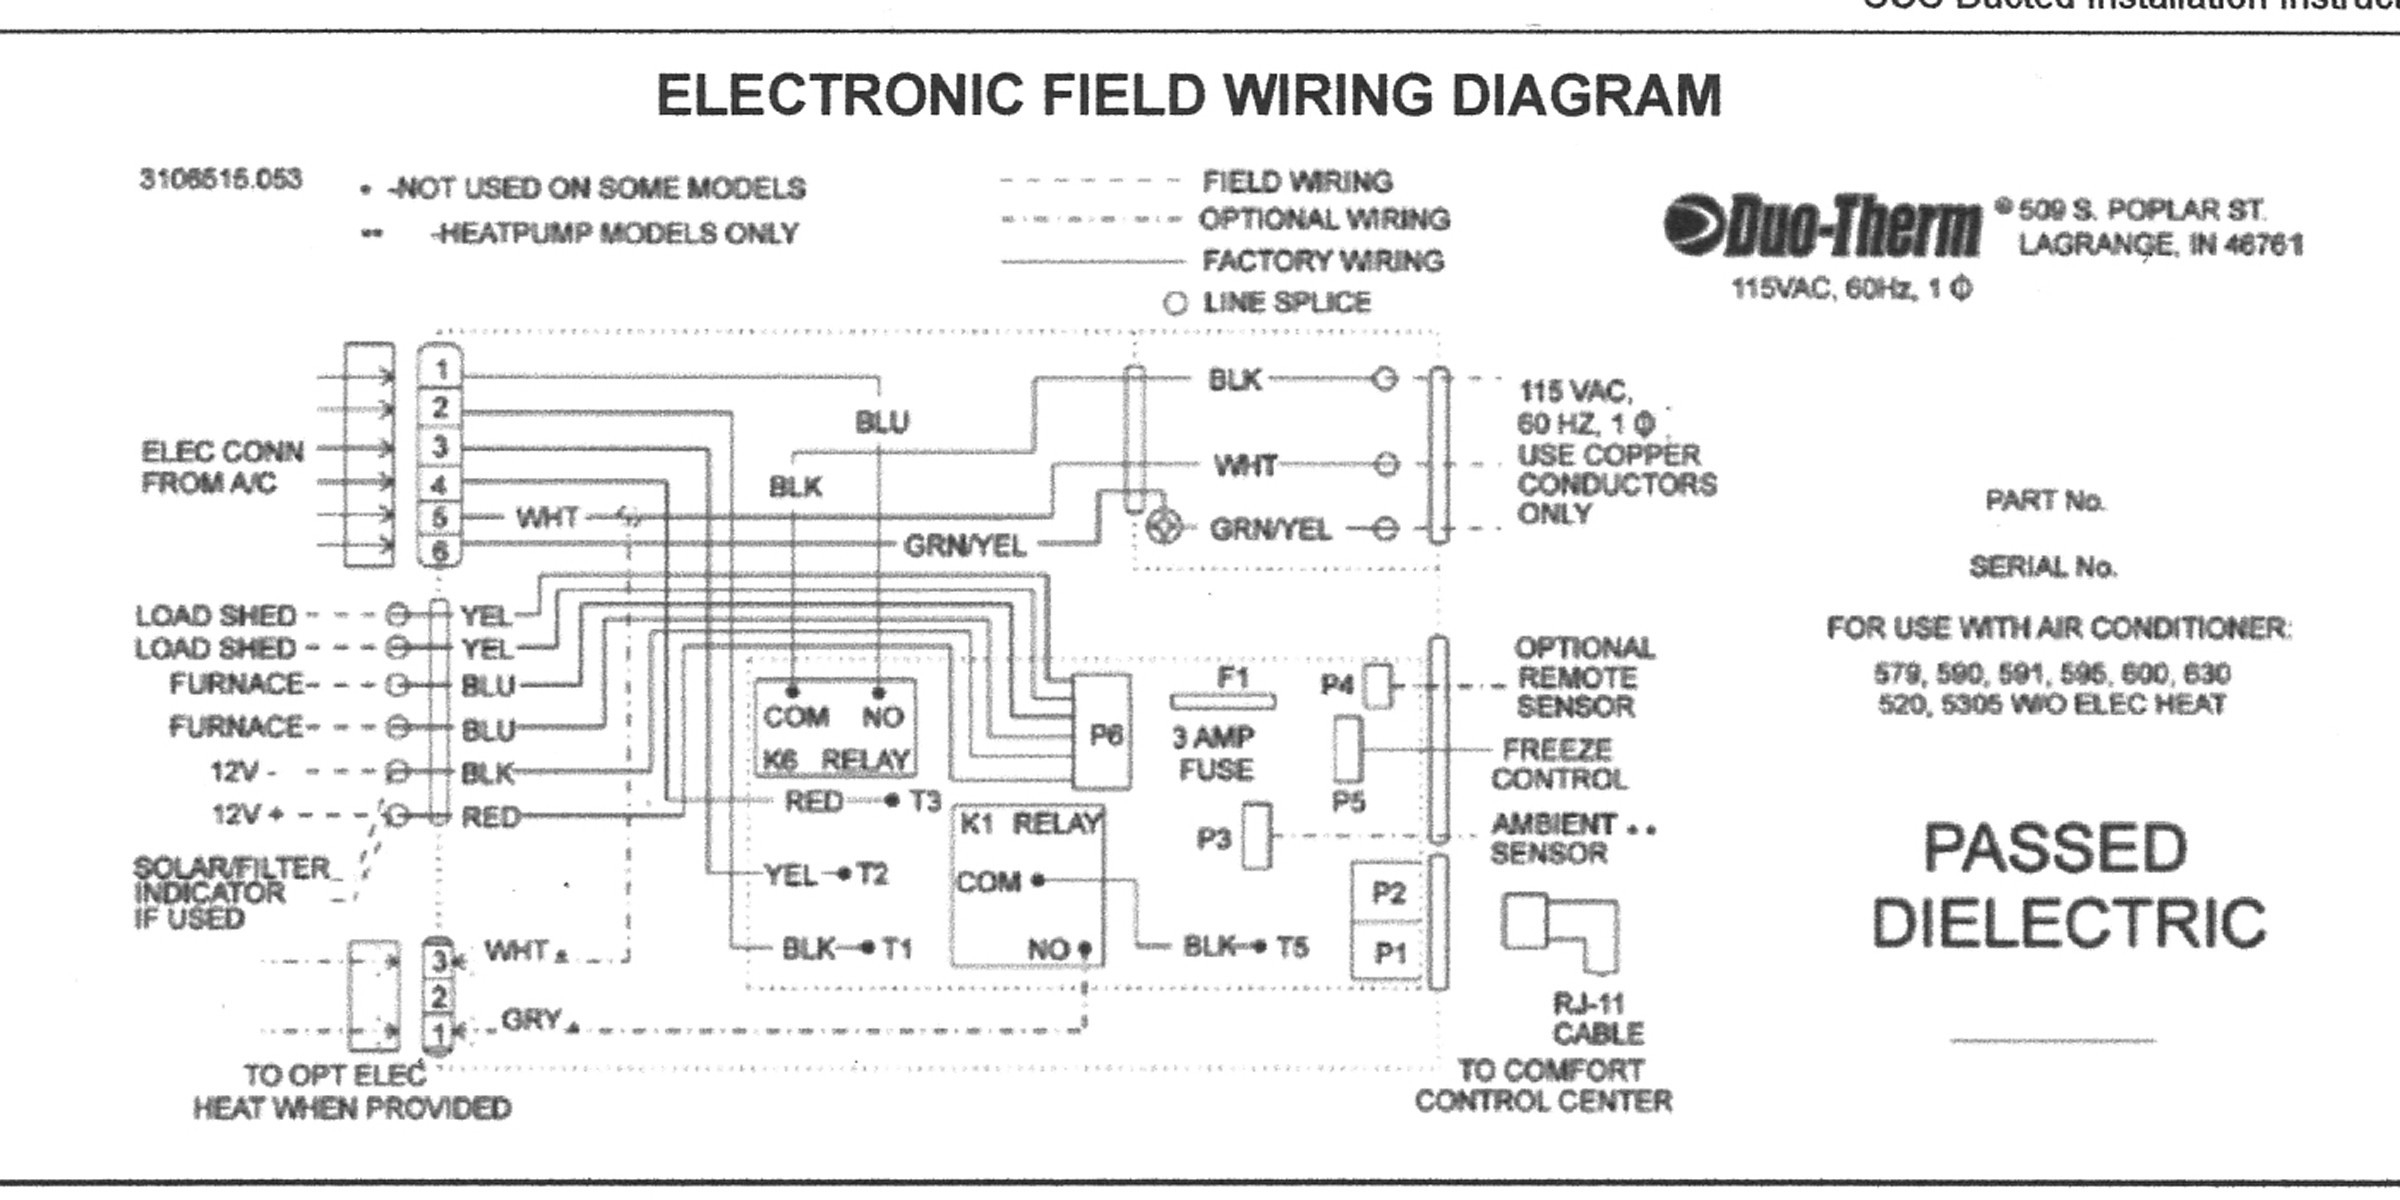 duo therm air conditioner wiring diagram Download-Rv Ac Wiring Diagram Valid Wiring A Ac thermostat Diagram New Duo therm thermostat Wiring 12-q